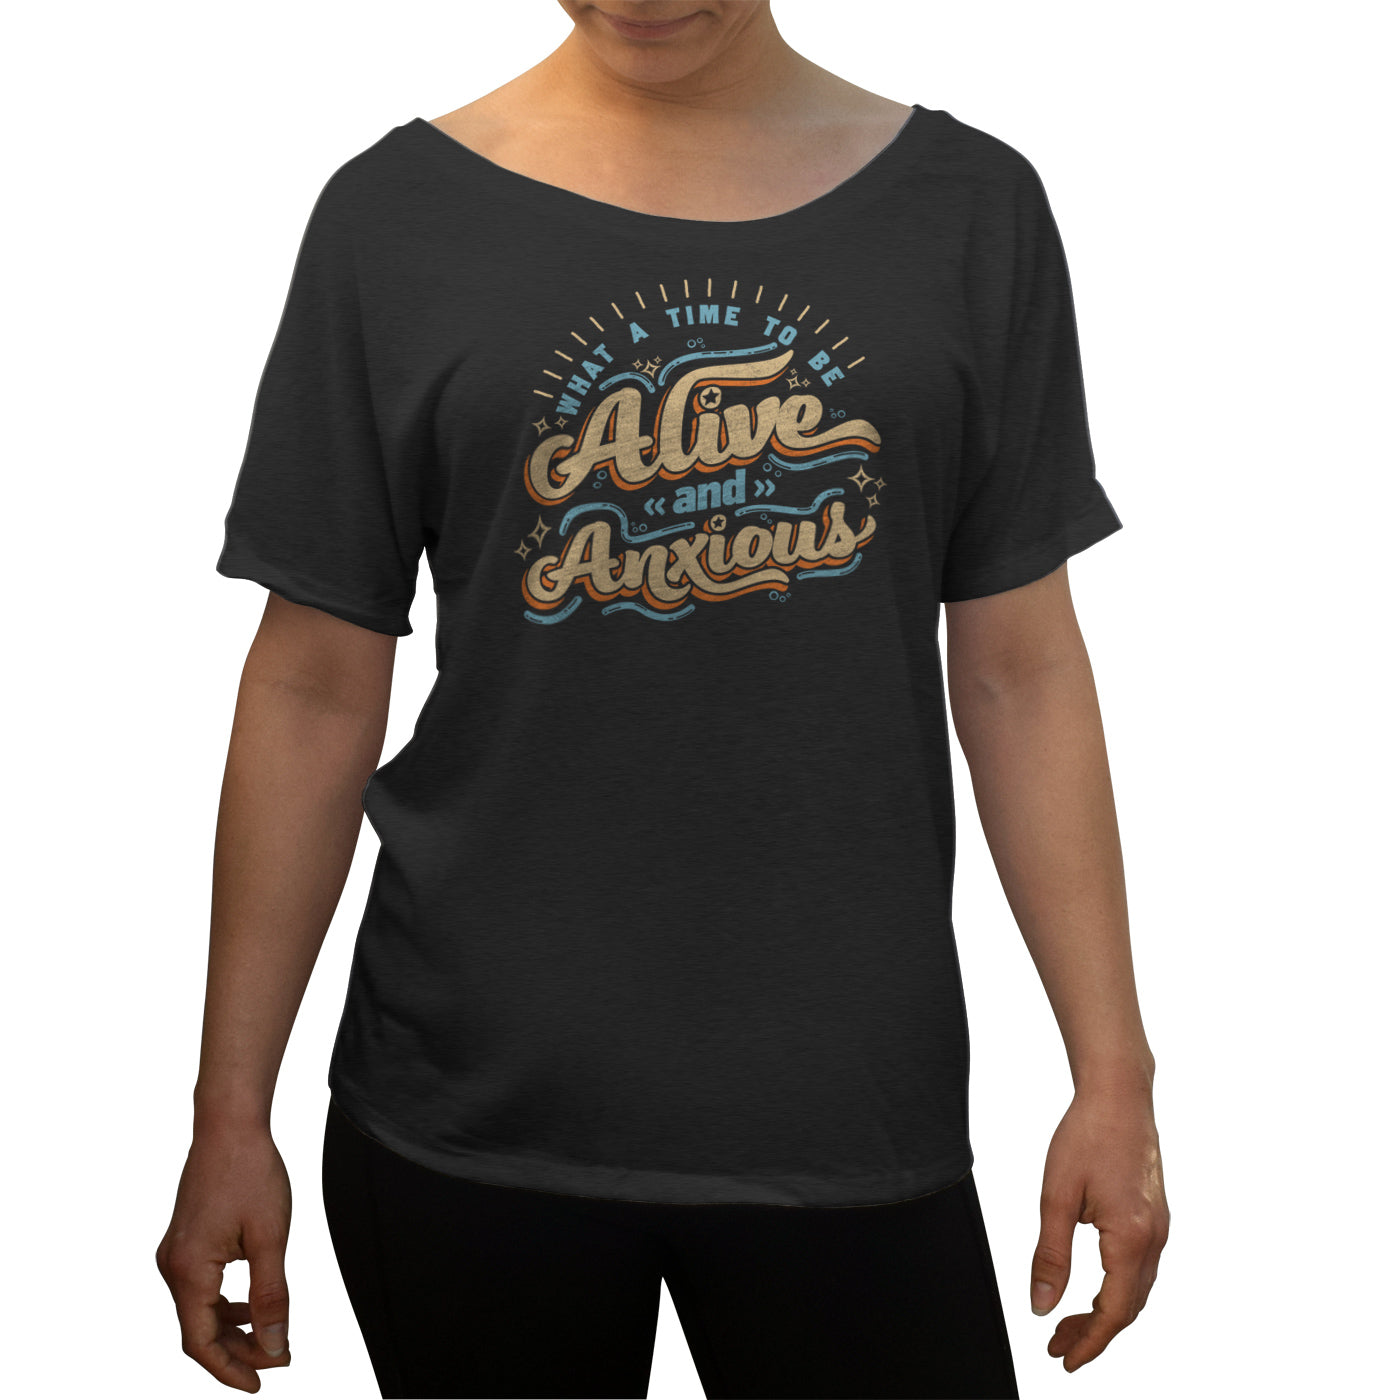 Women's What a Time to be Alive and Anxious Scoop Neck T-Shirt